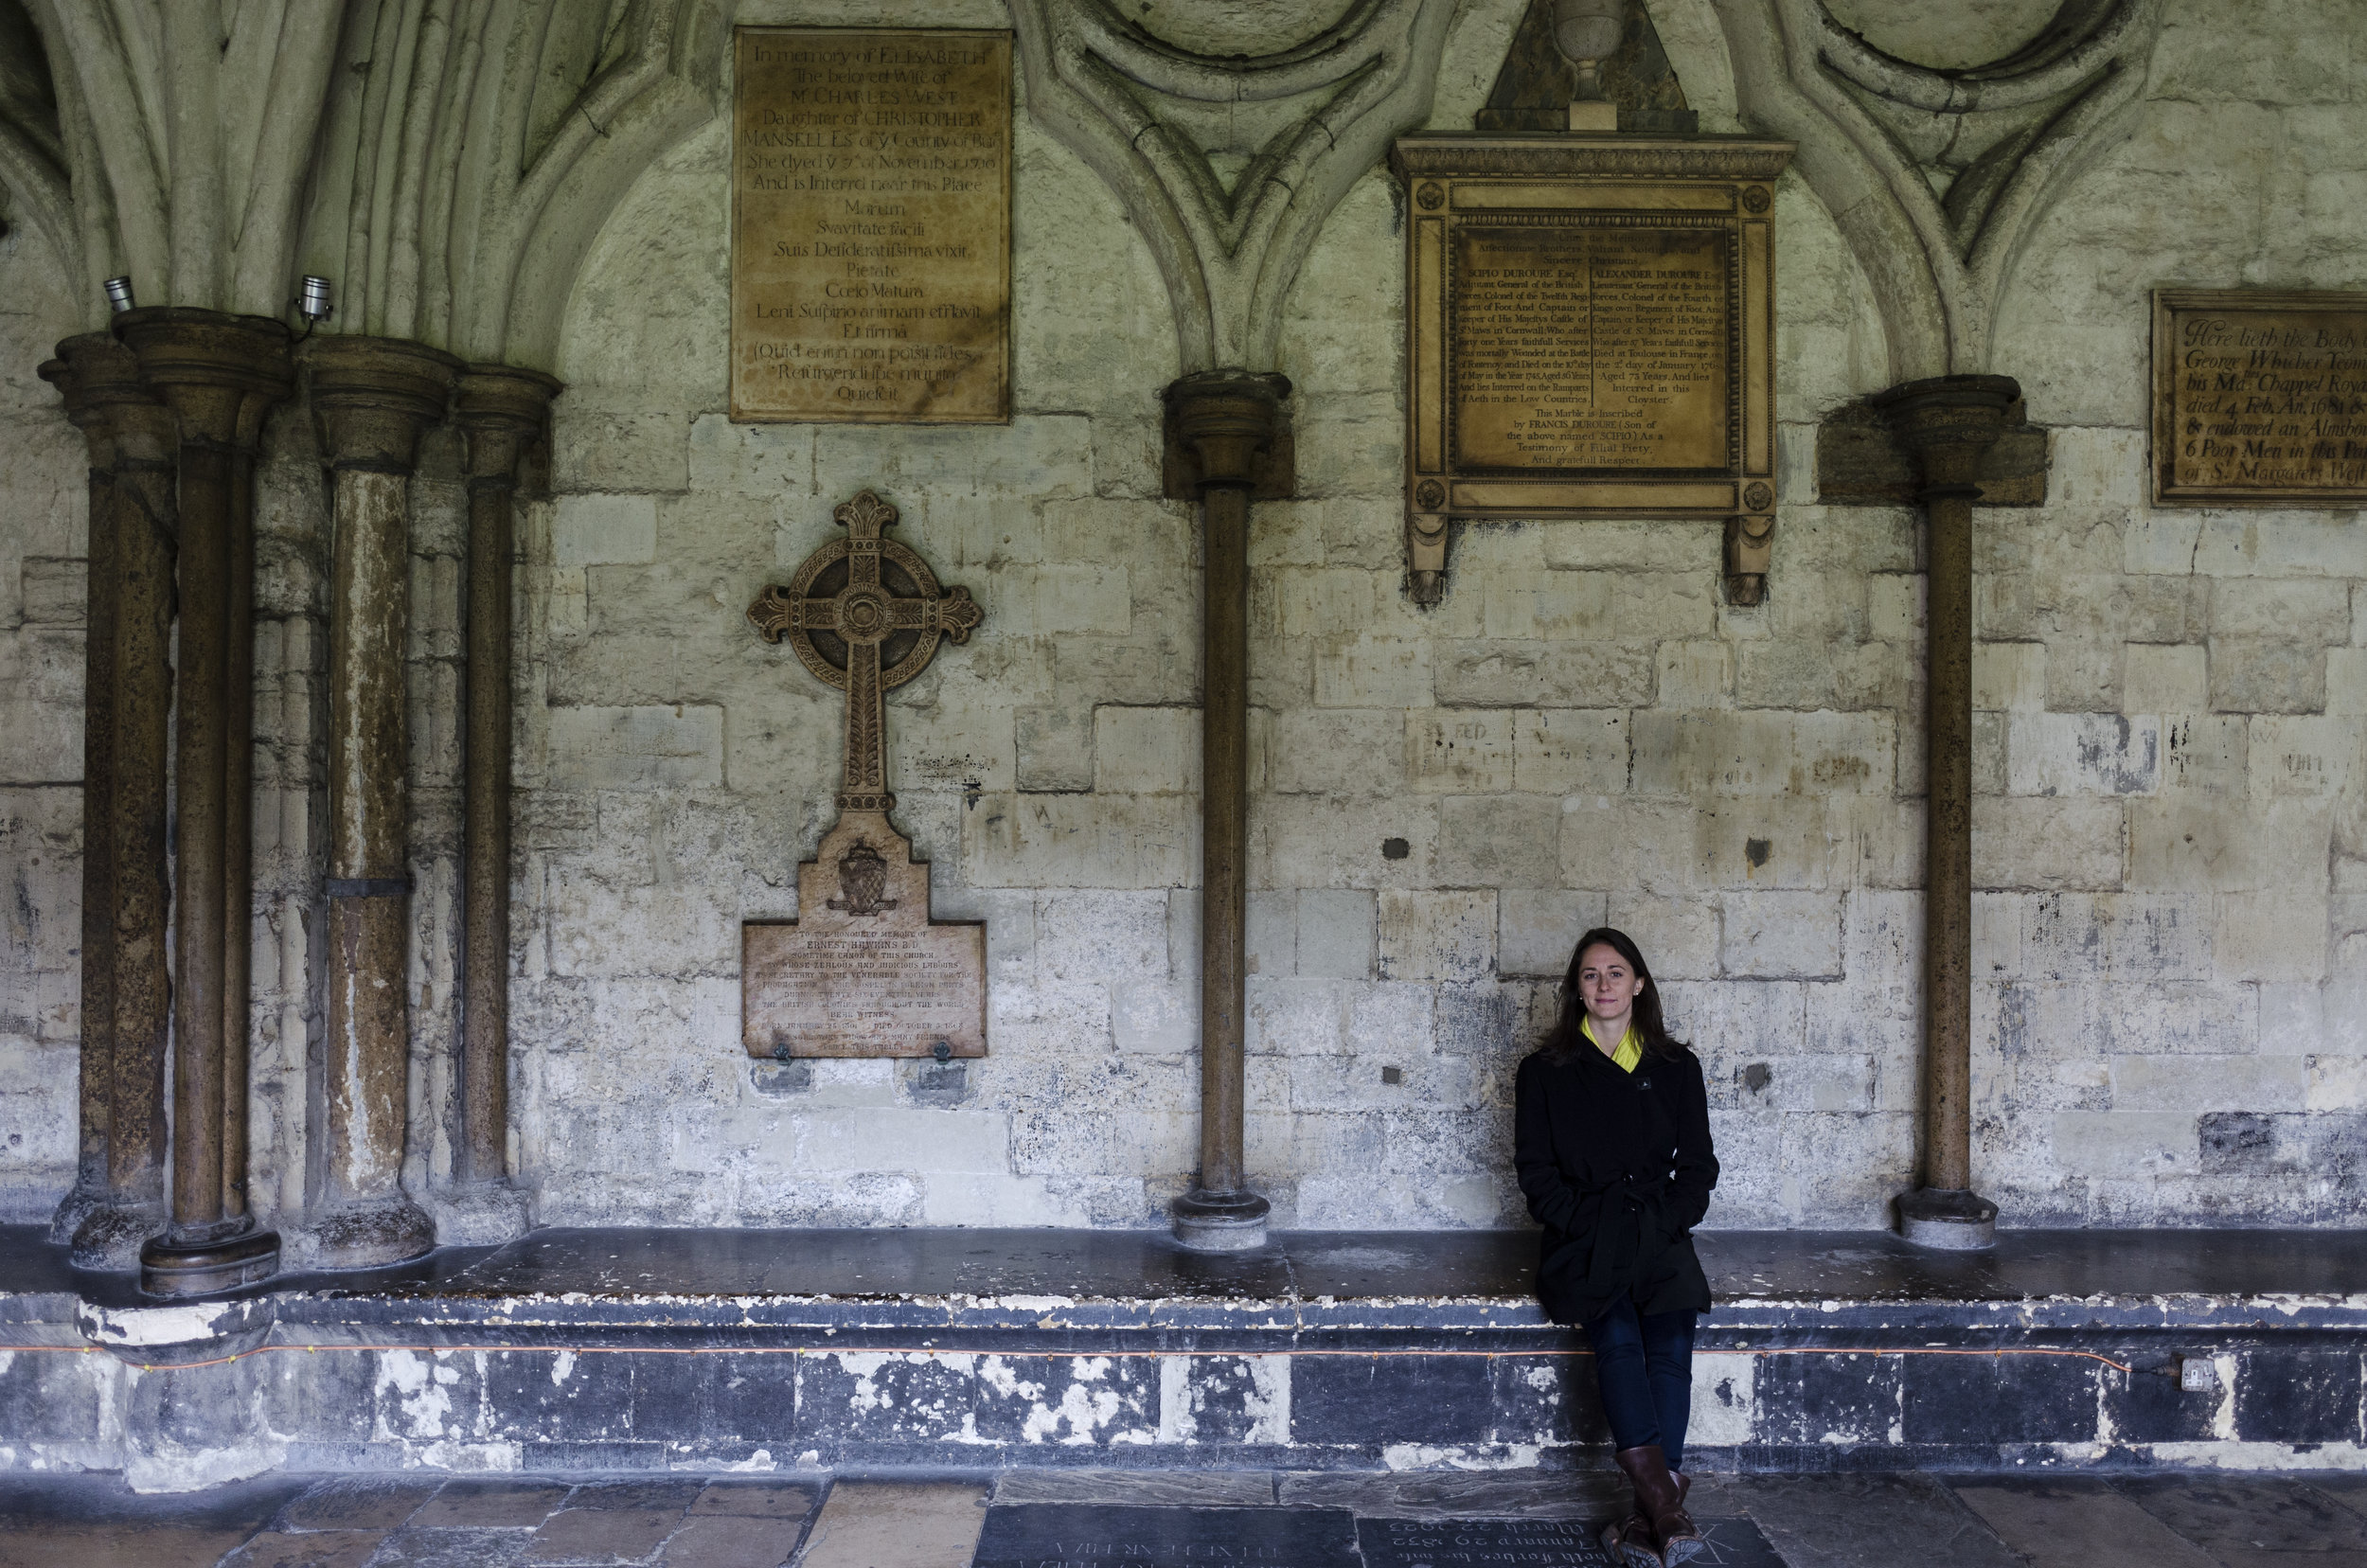 Among the textured walls of Westminster Abbey.